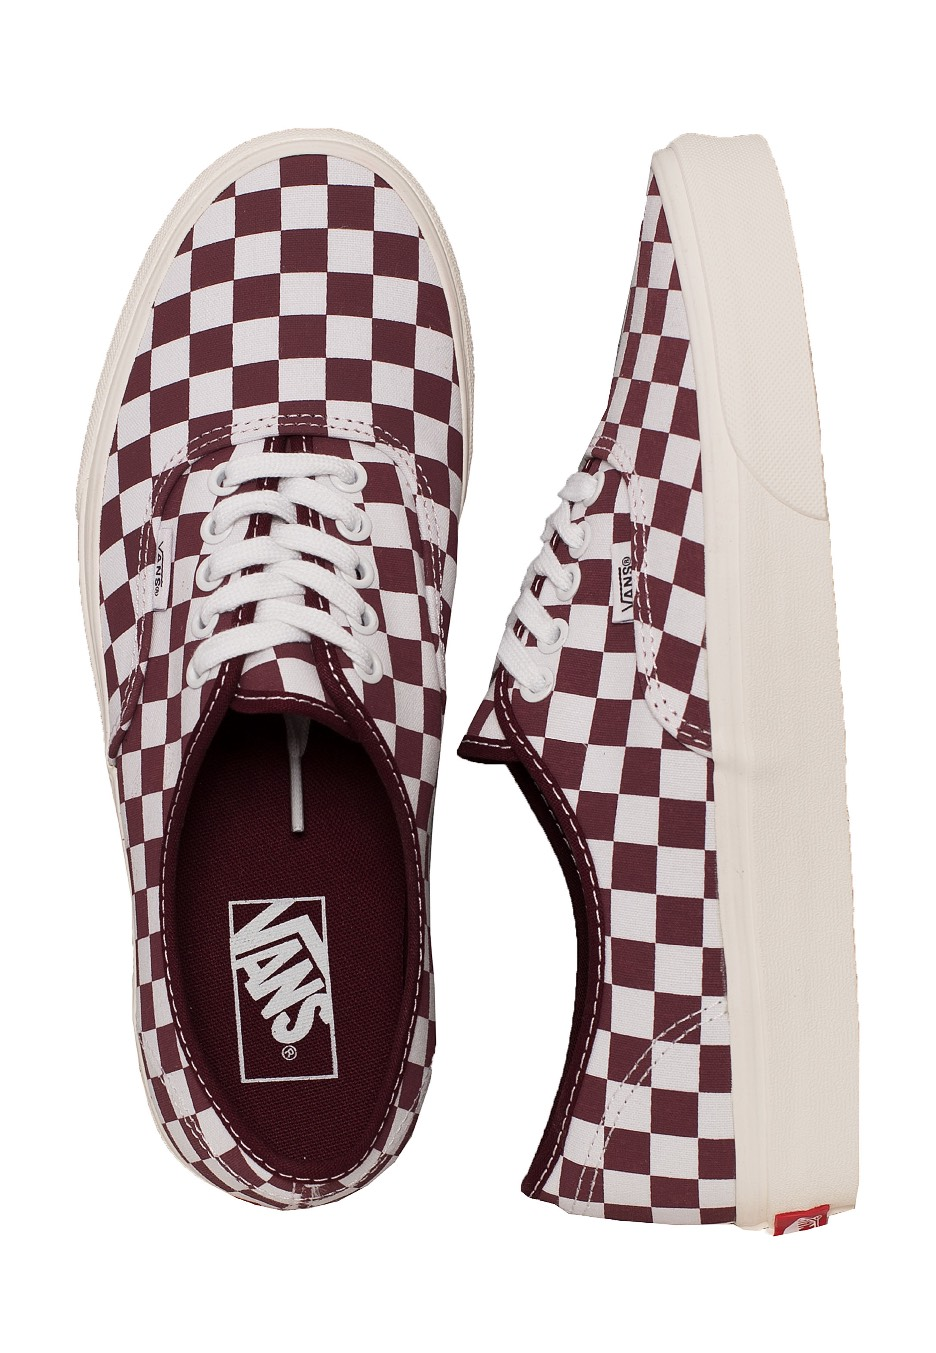 1a6b319b5dcdc1 Vans - Authentic Checkerboard Port Royale Marshmallow - Girl Shoes -  Impericon.com UK